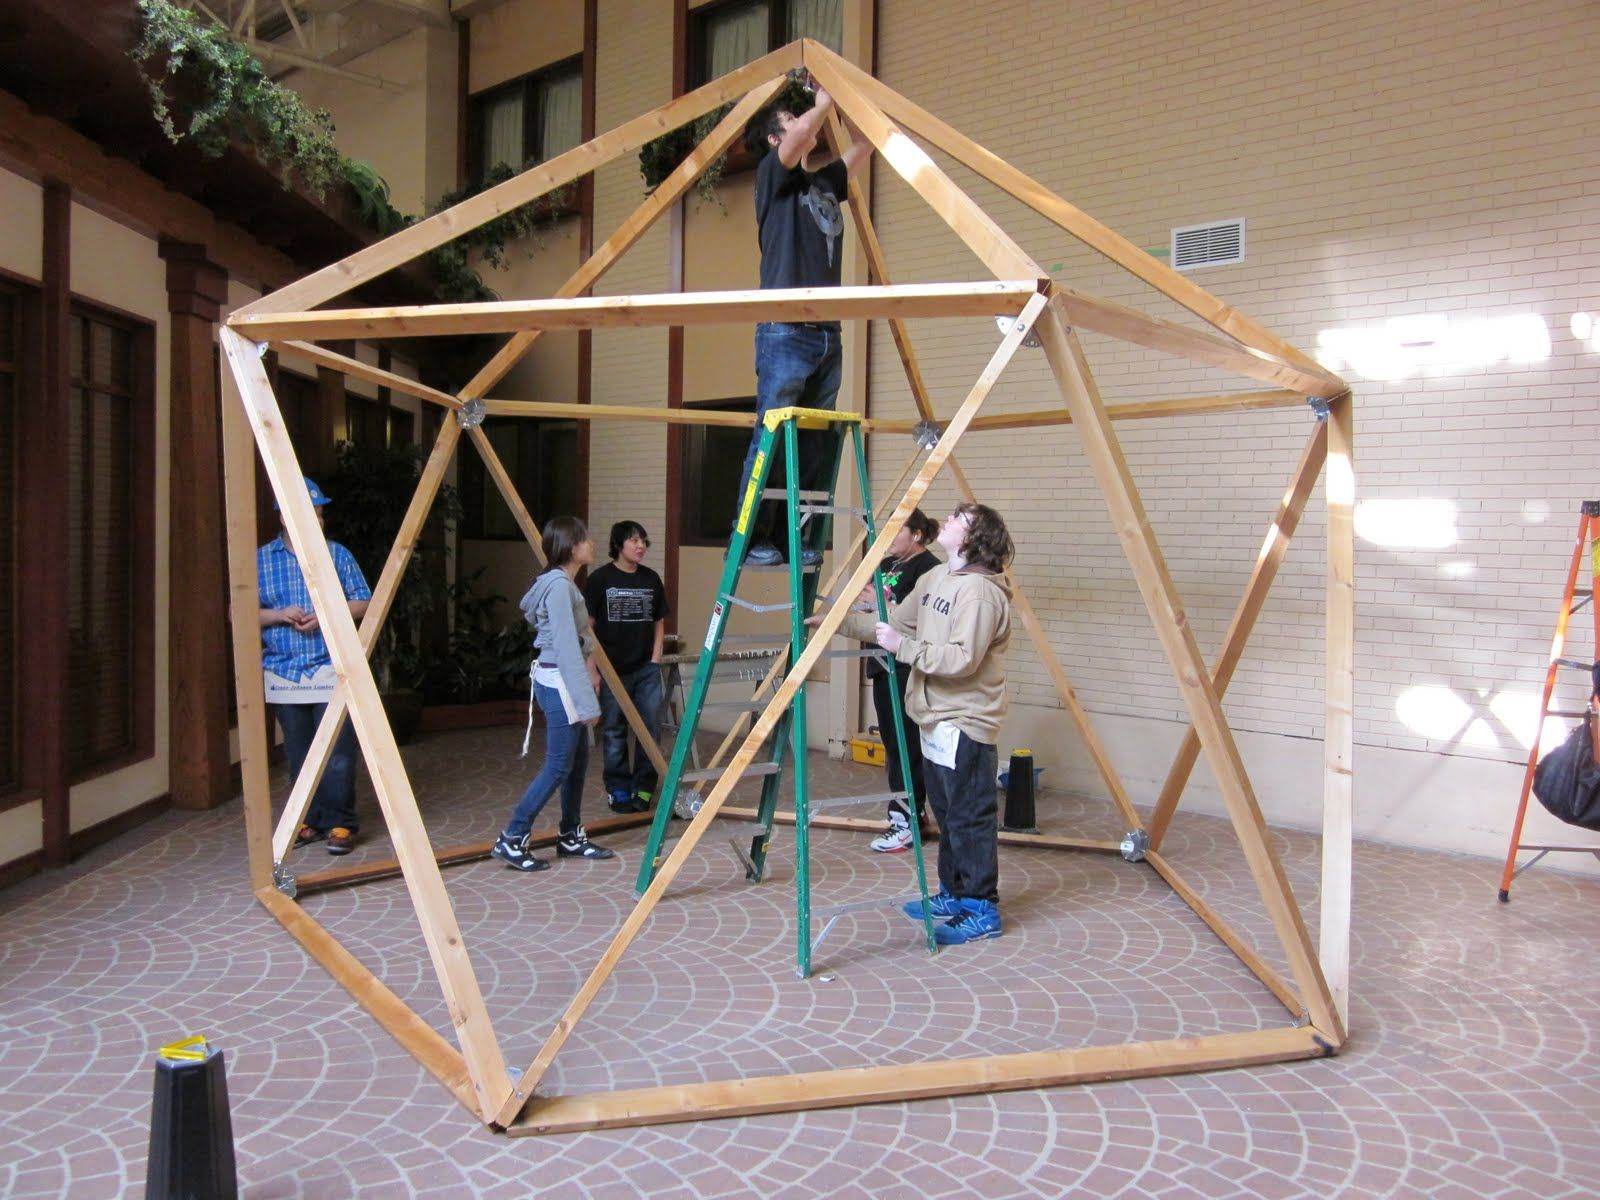 And This Is My Garden: Students construct Geodesic Greenhouse frame ...